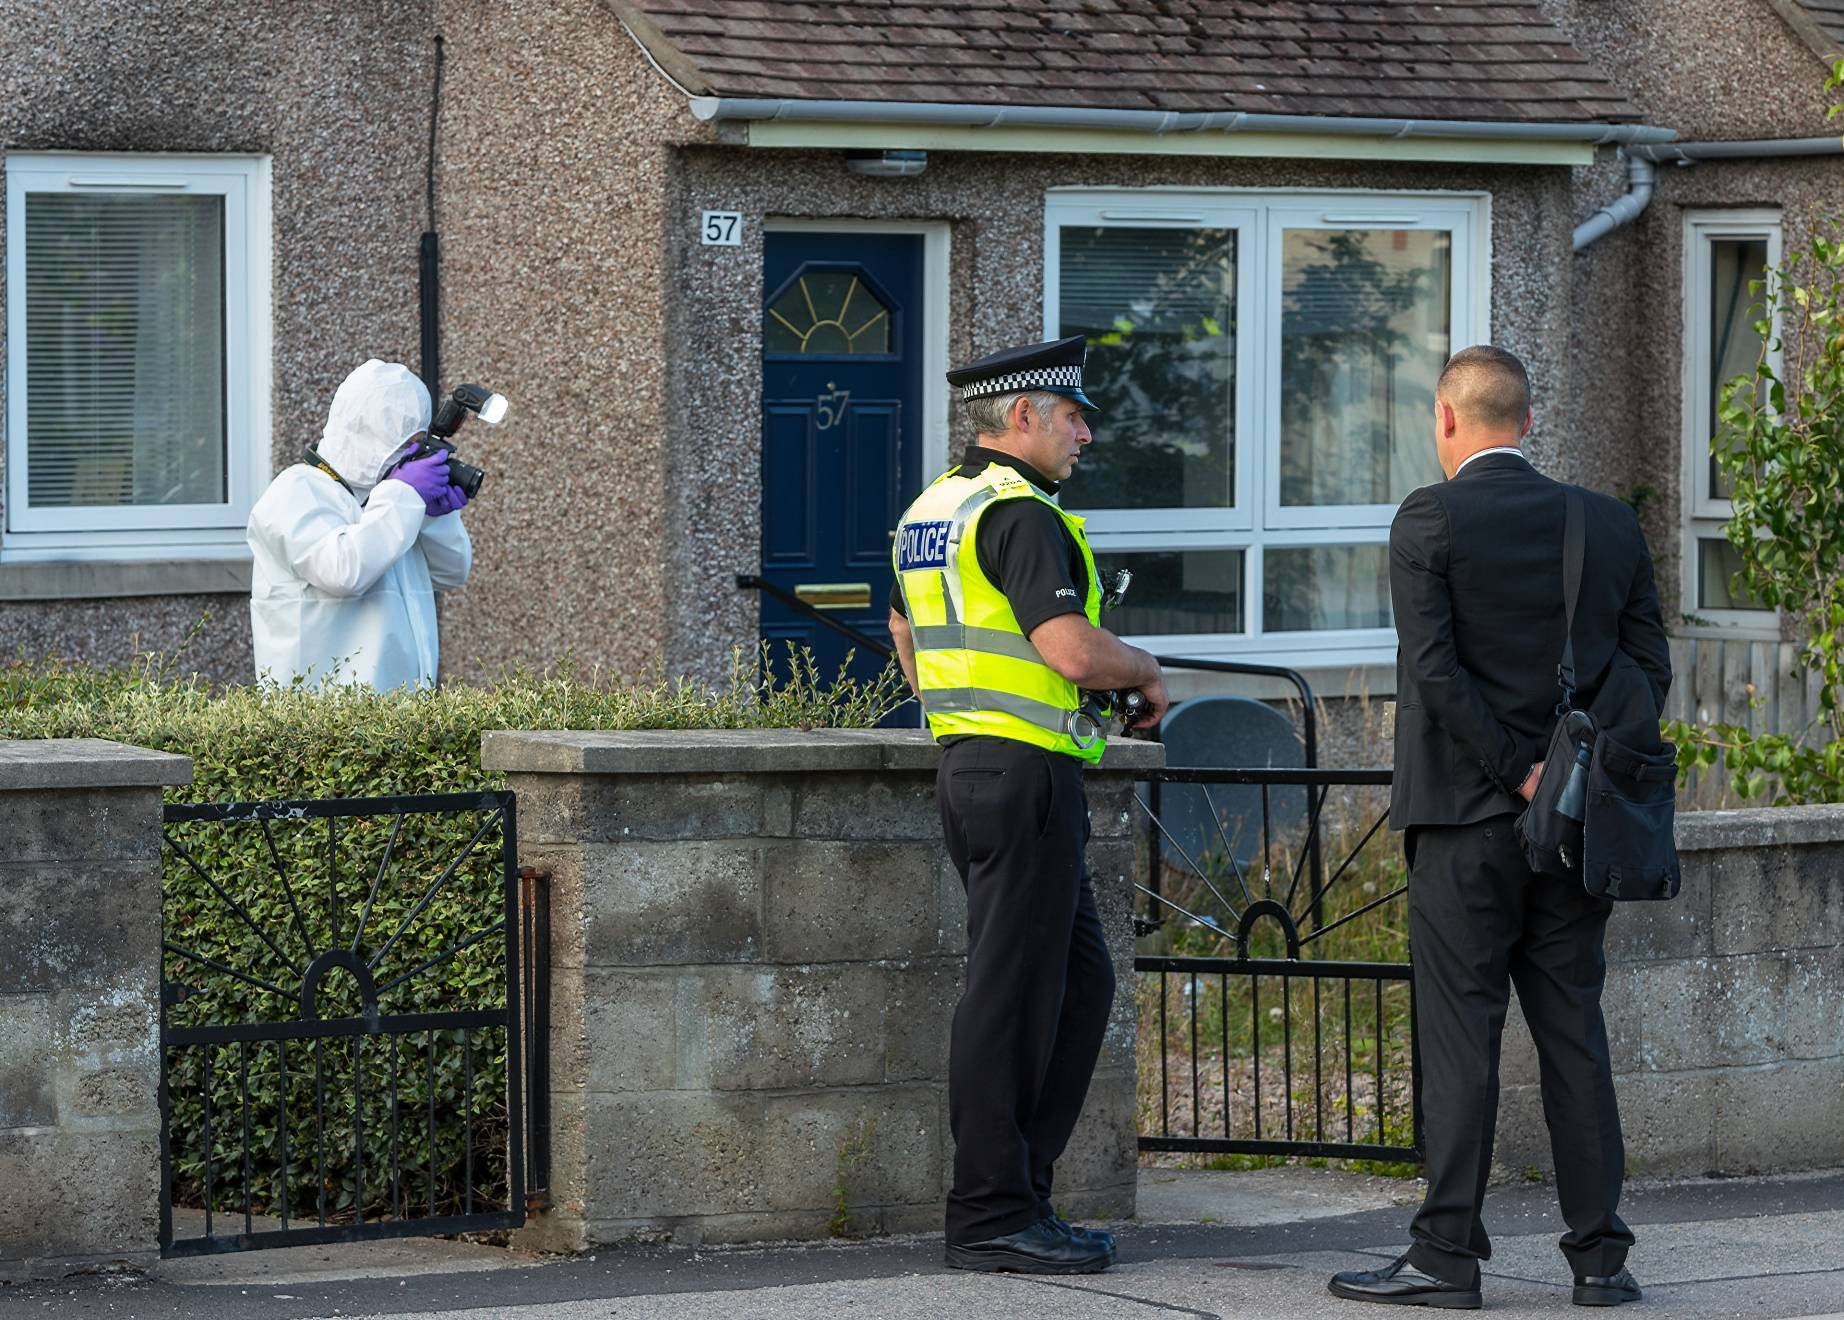 The alleged incident happened on Morriston Road in Elgin.